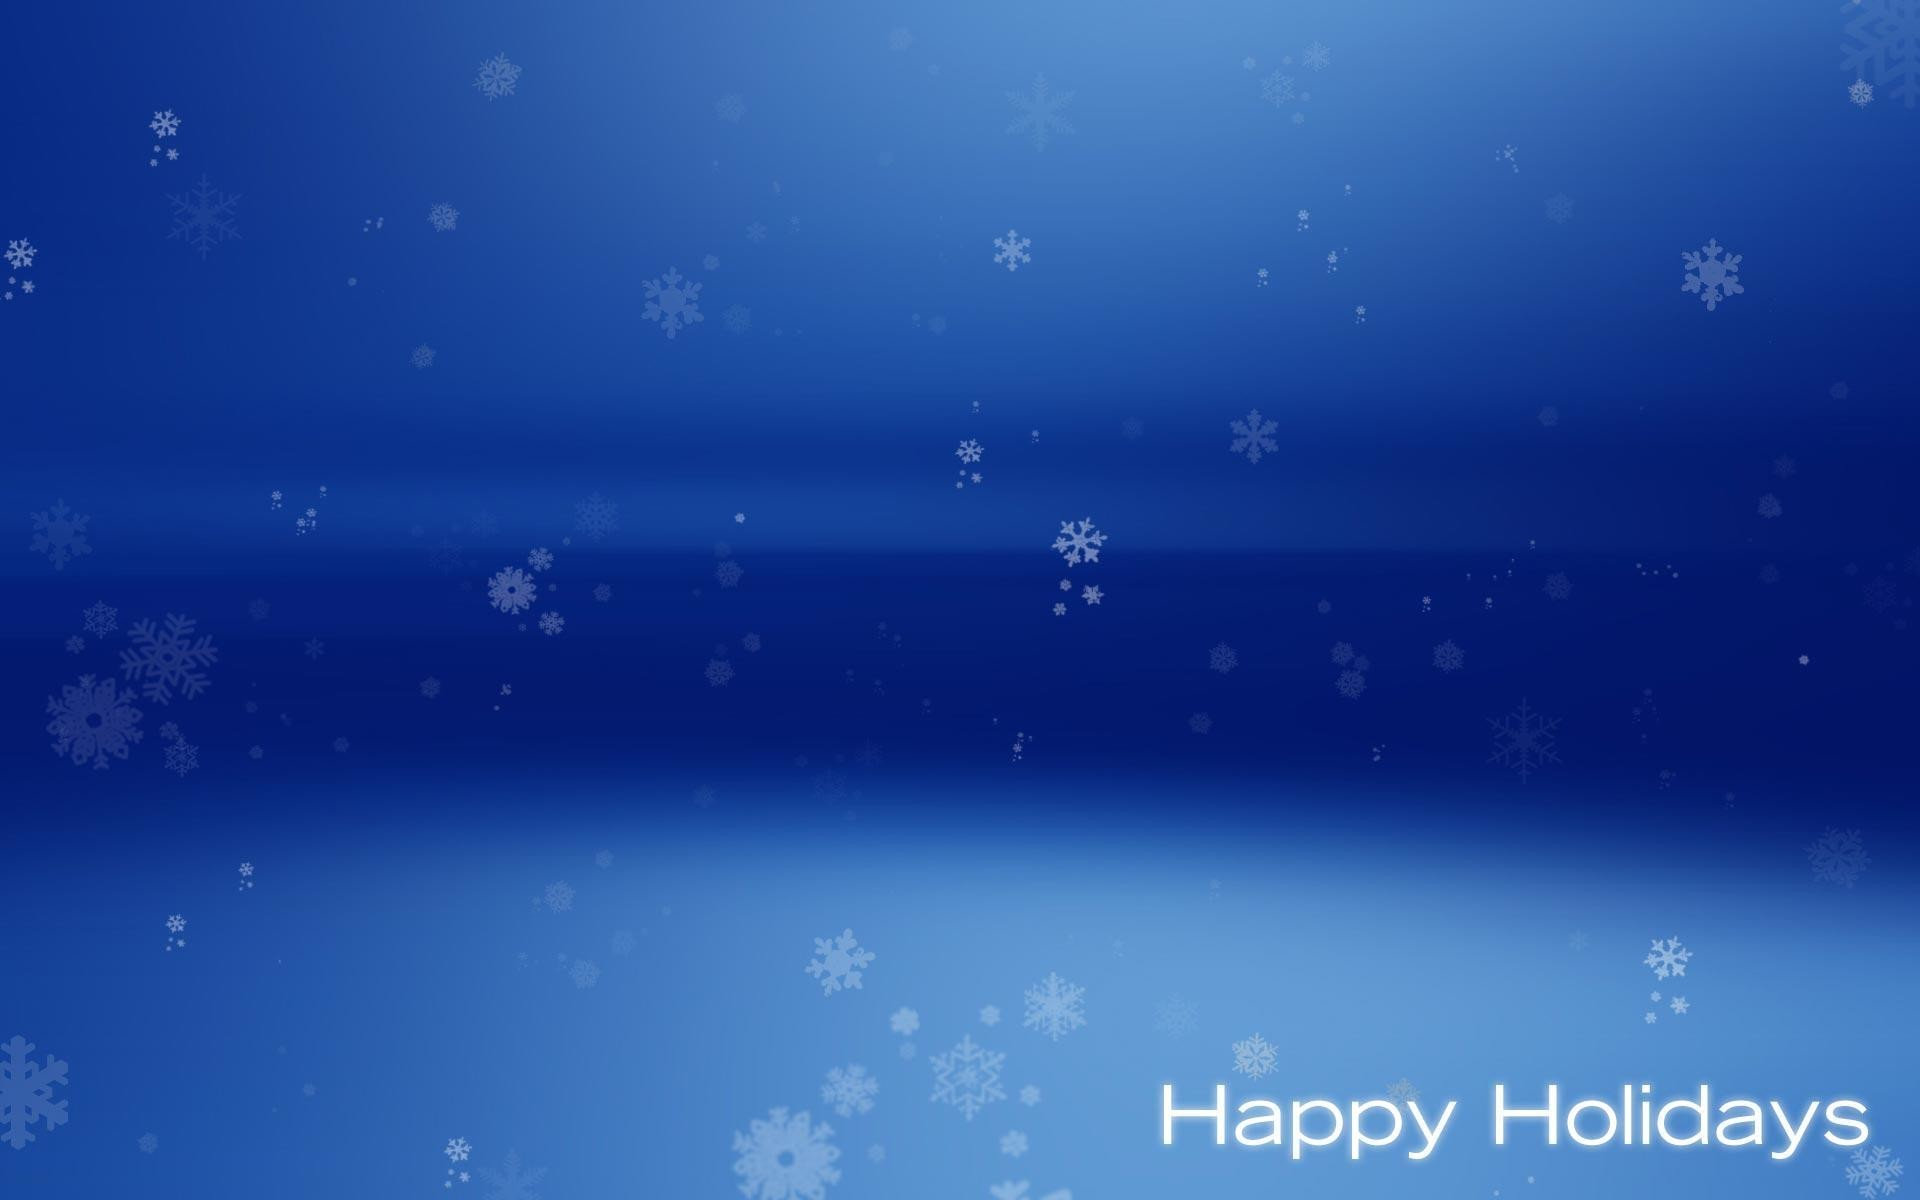 holidays backgrounds (59+ images)